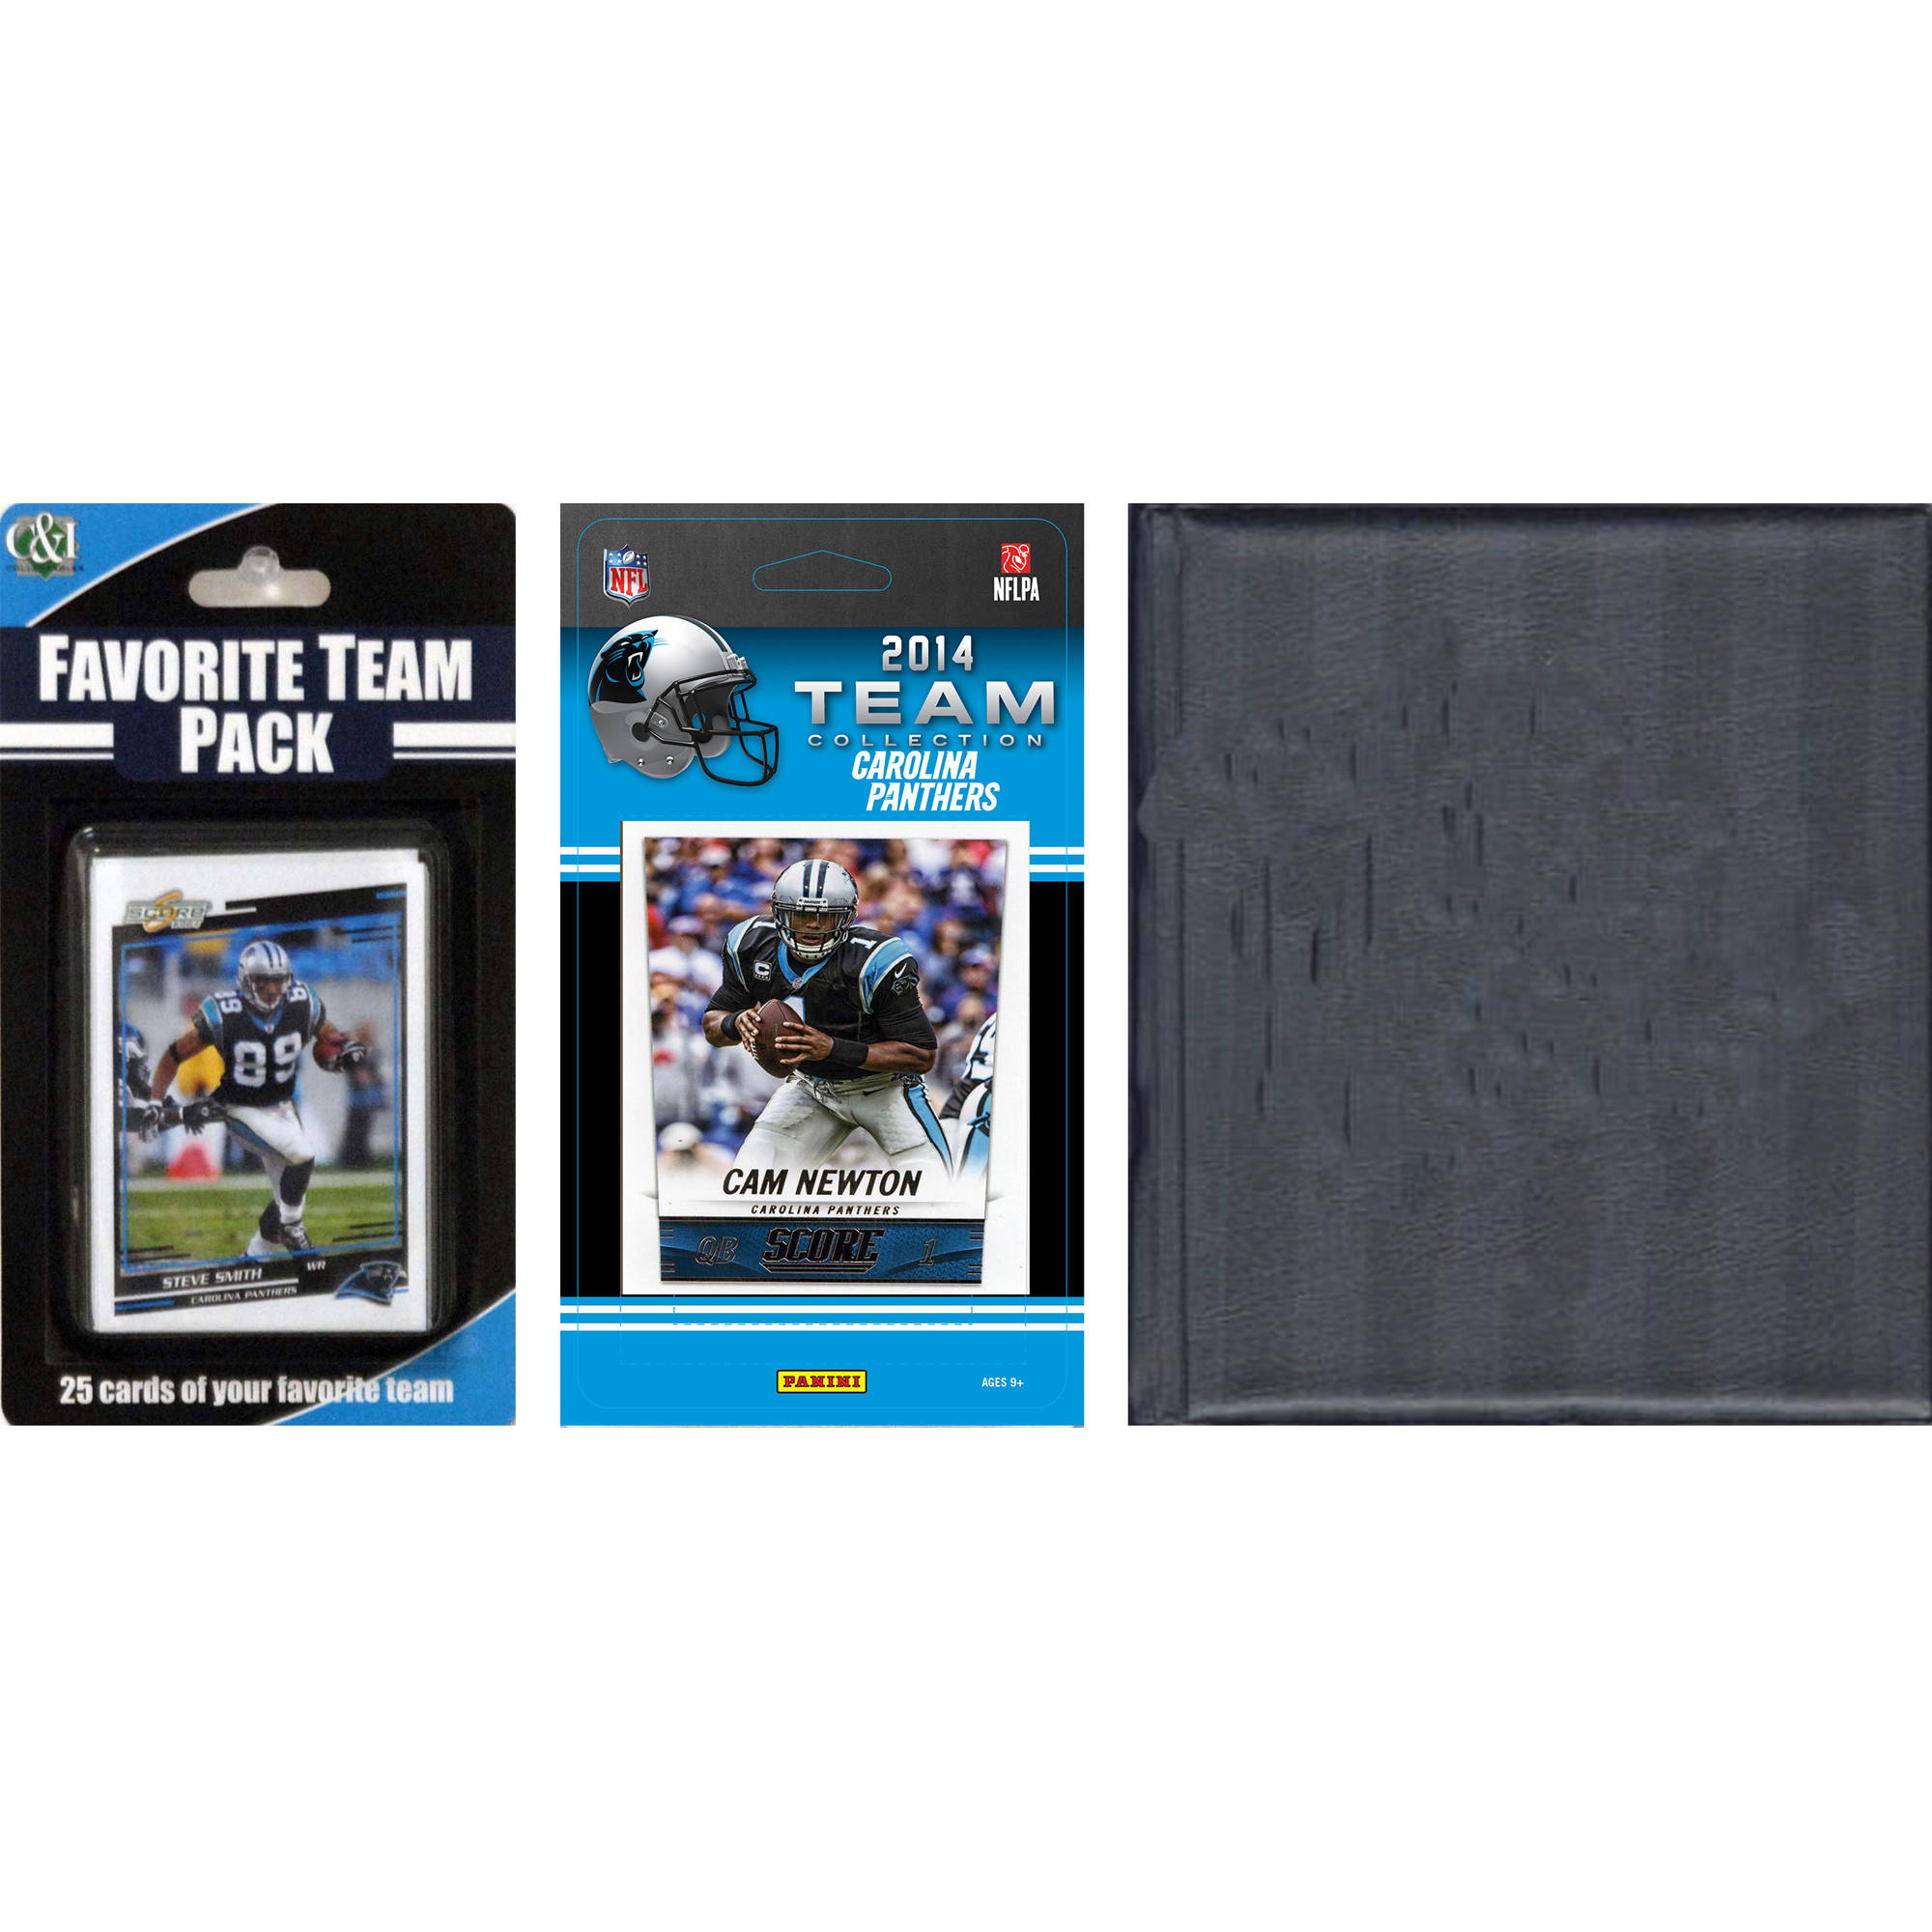 C&I Collectables NFL Carolina Panthers Licensed 2014 Score Team Set and Favorite Player Trading Card Pack Plus Storage Album